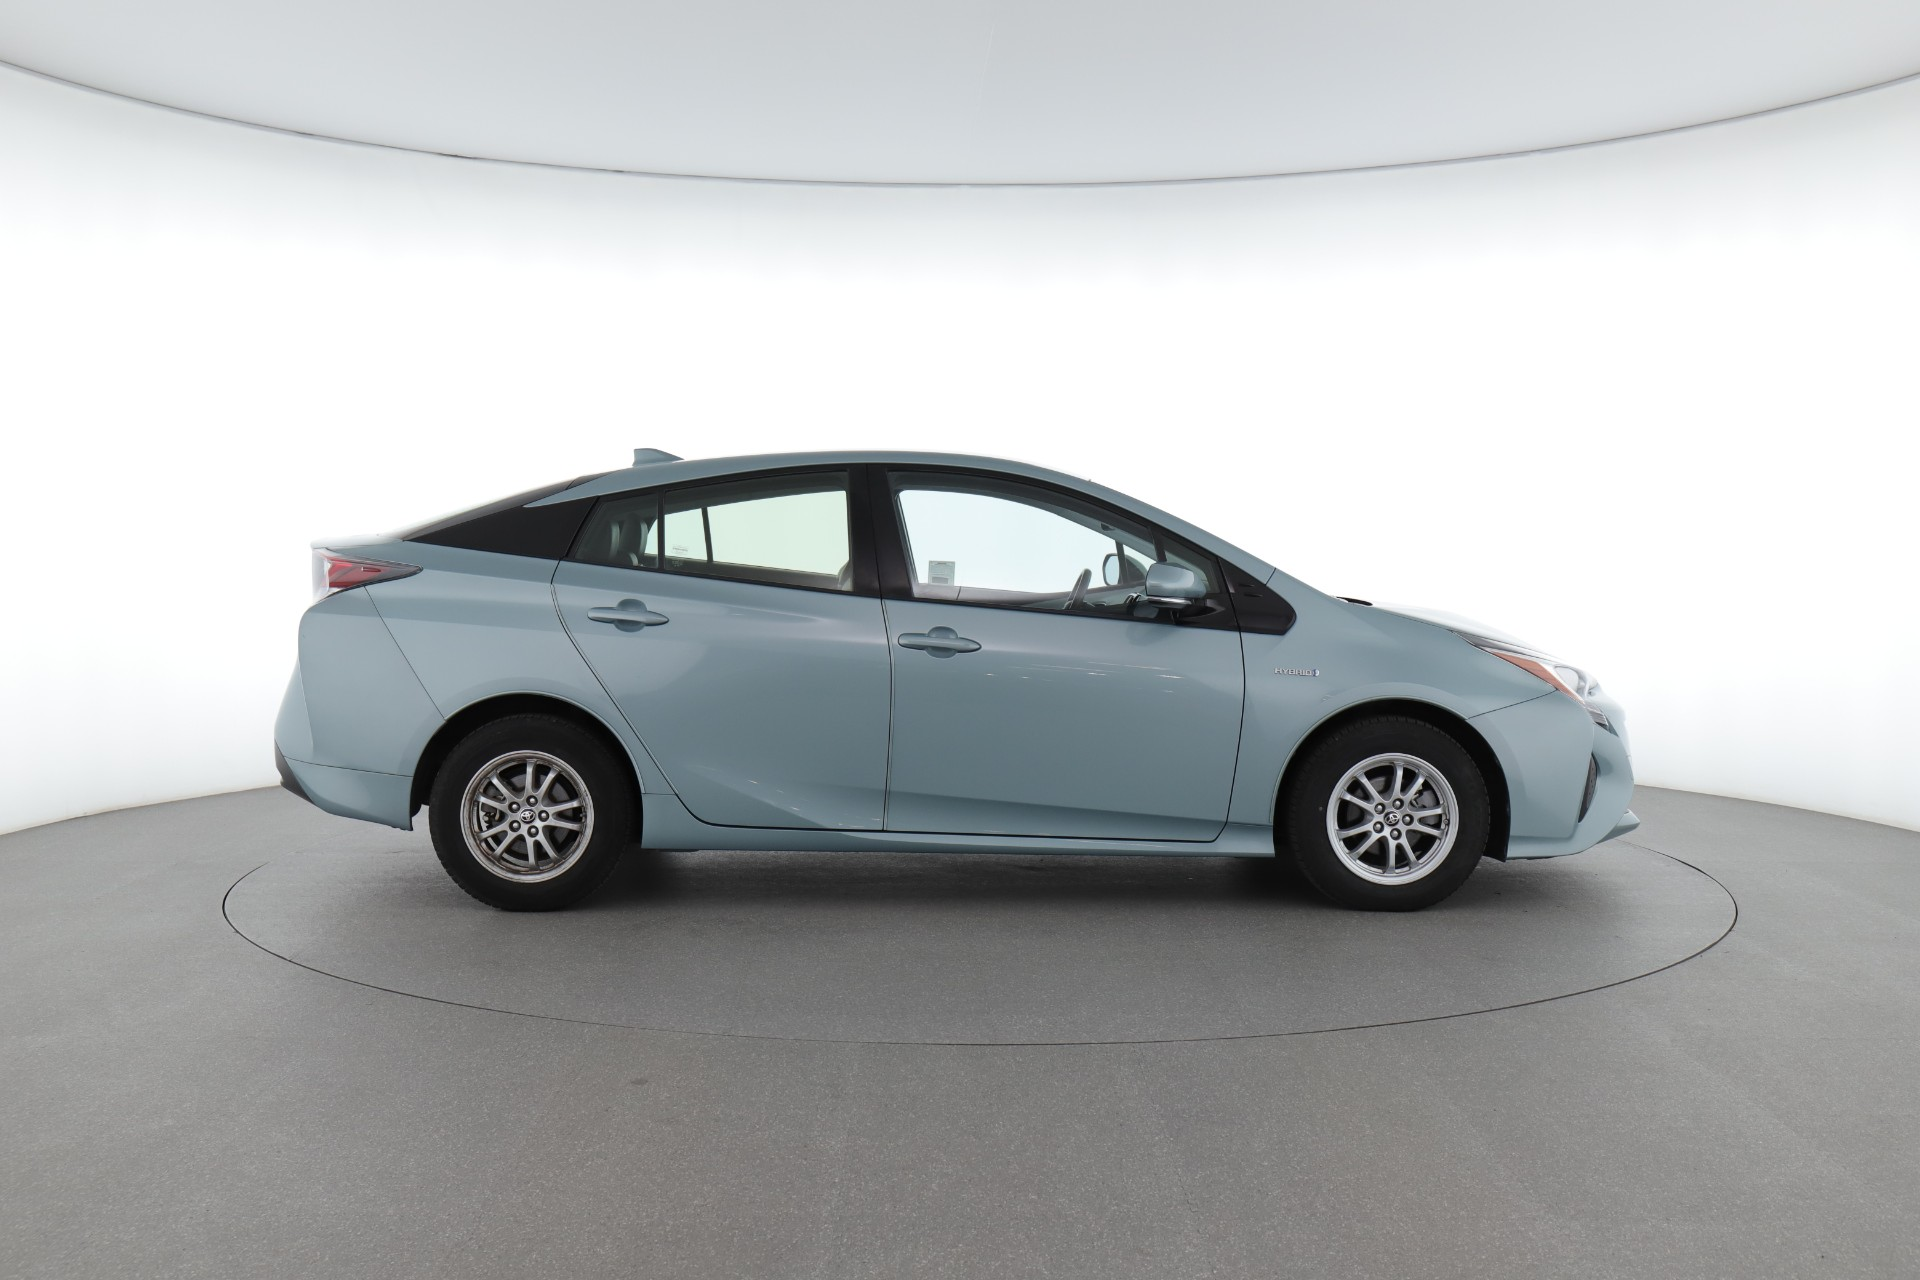 Toyota Prius Reviews: Price, Models and More